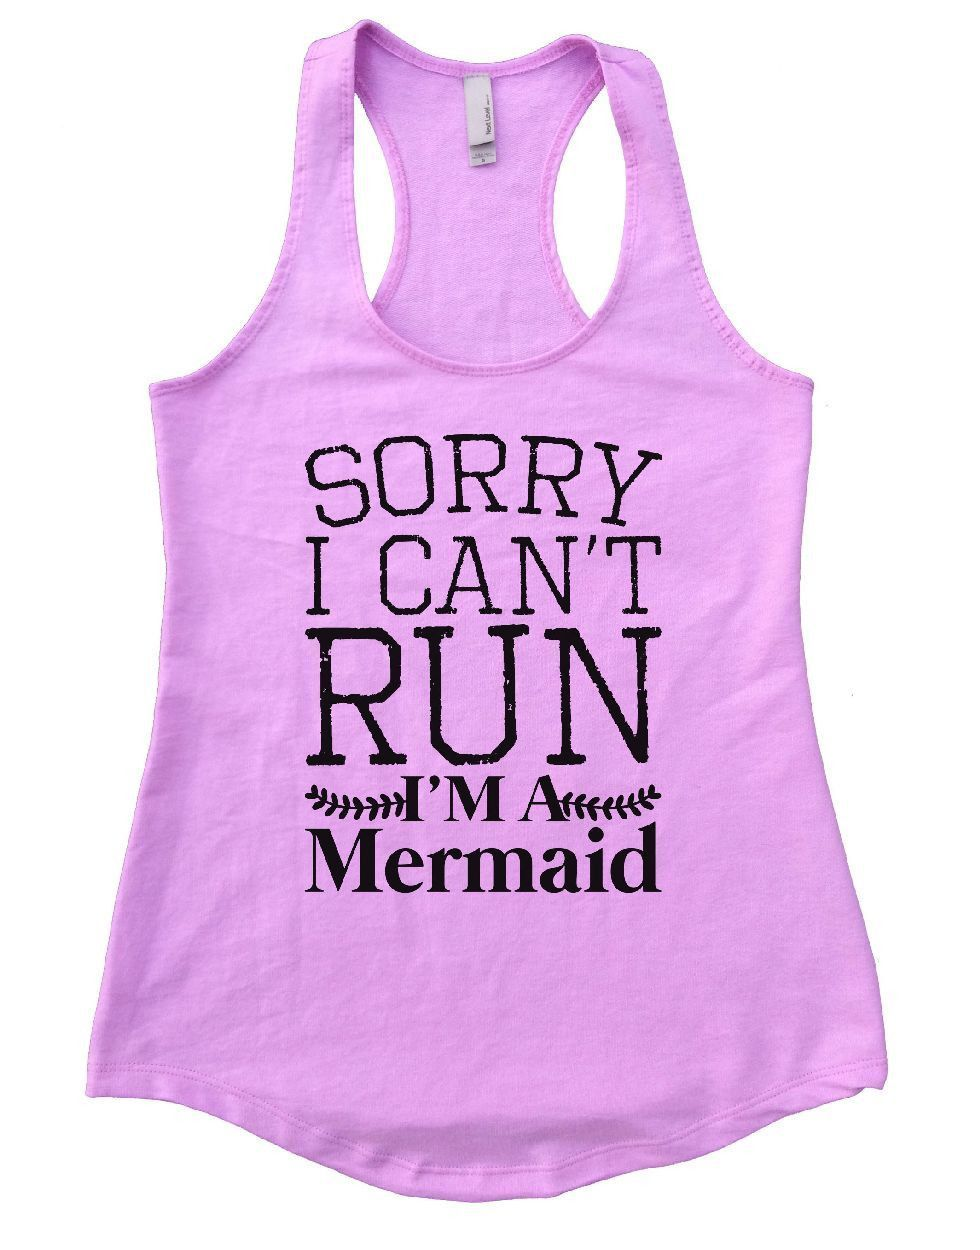 SORRY I CAN'T RUN I'M A Mermaid Womens Workout Tank Top